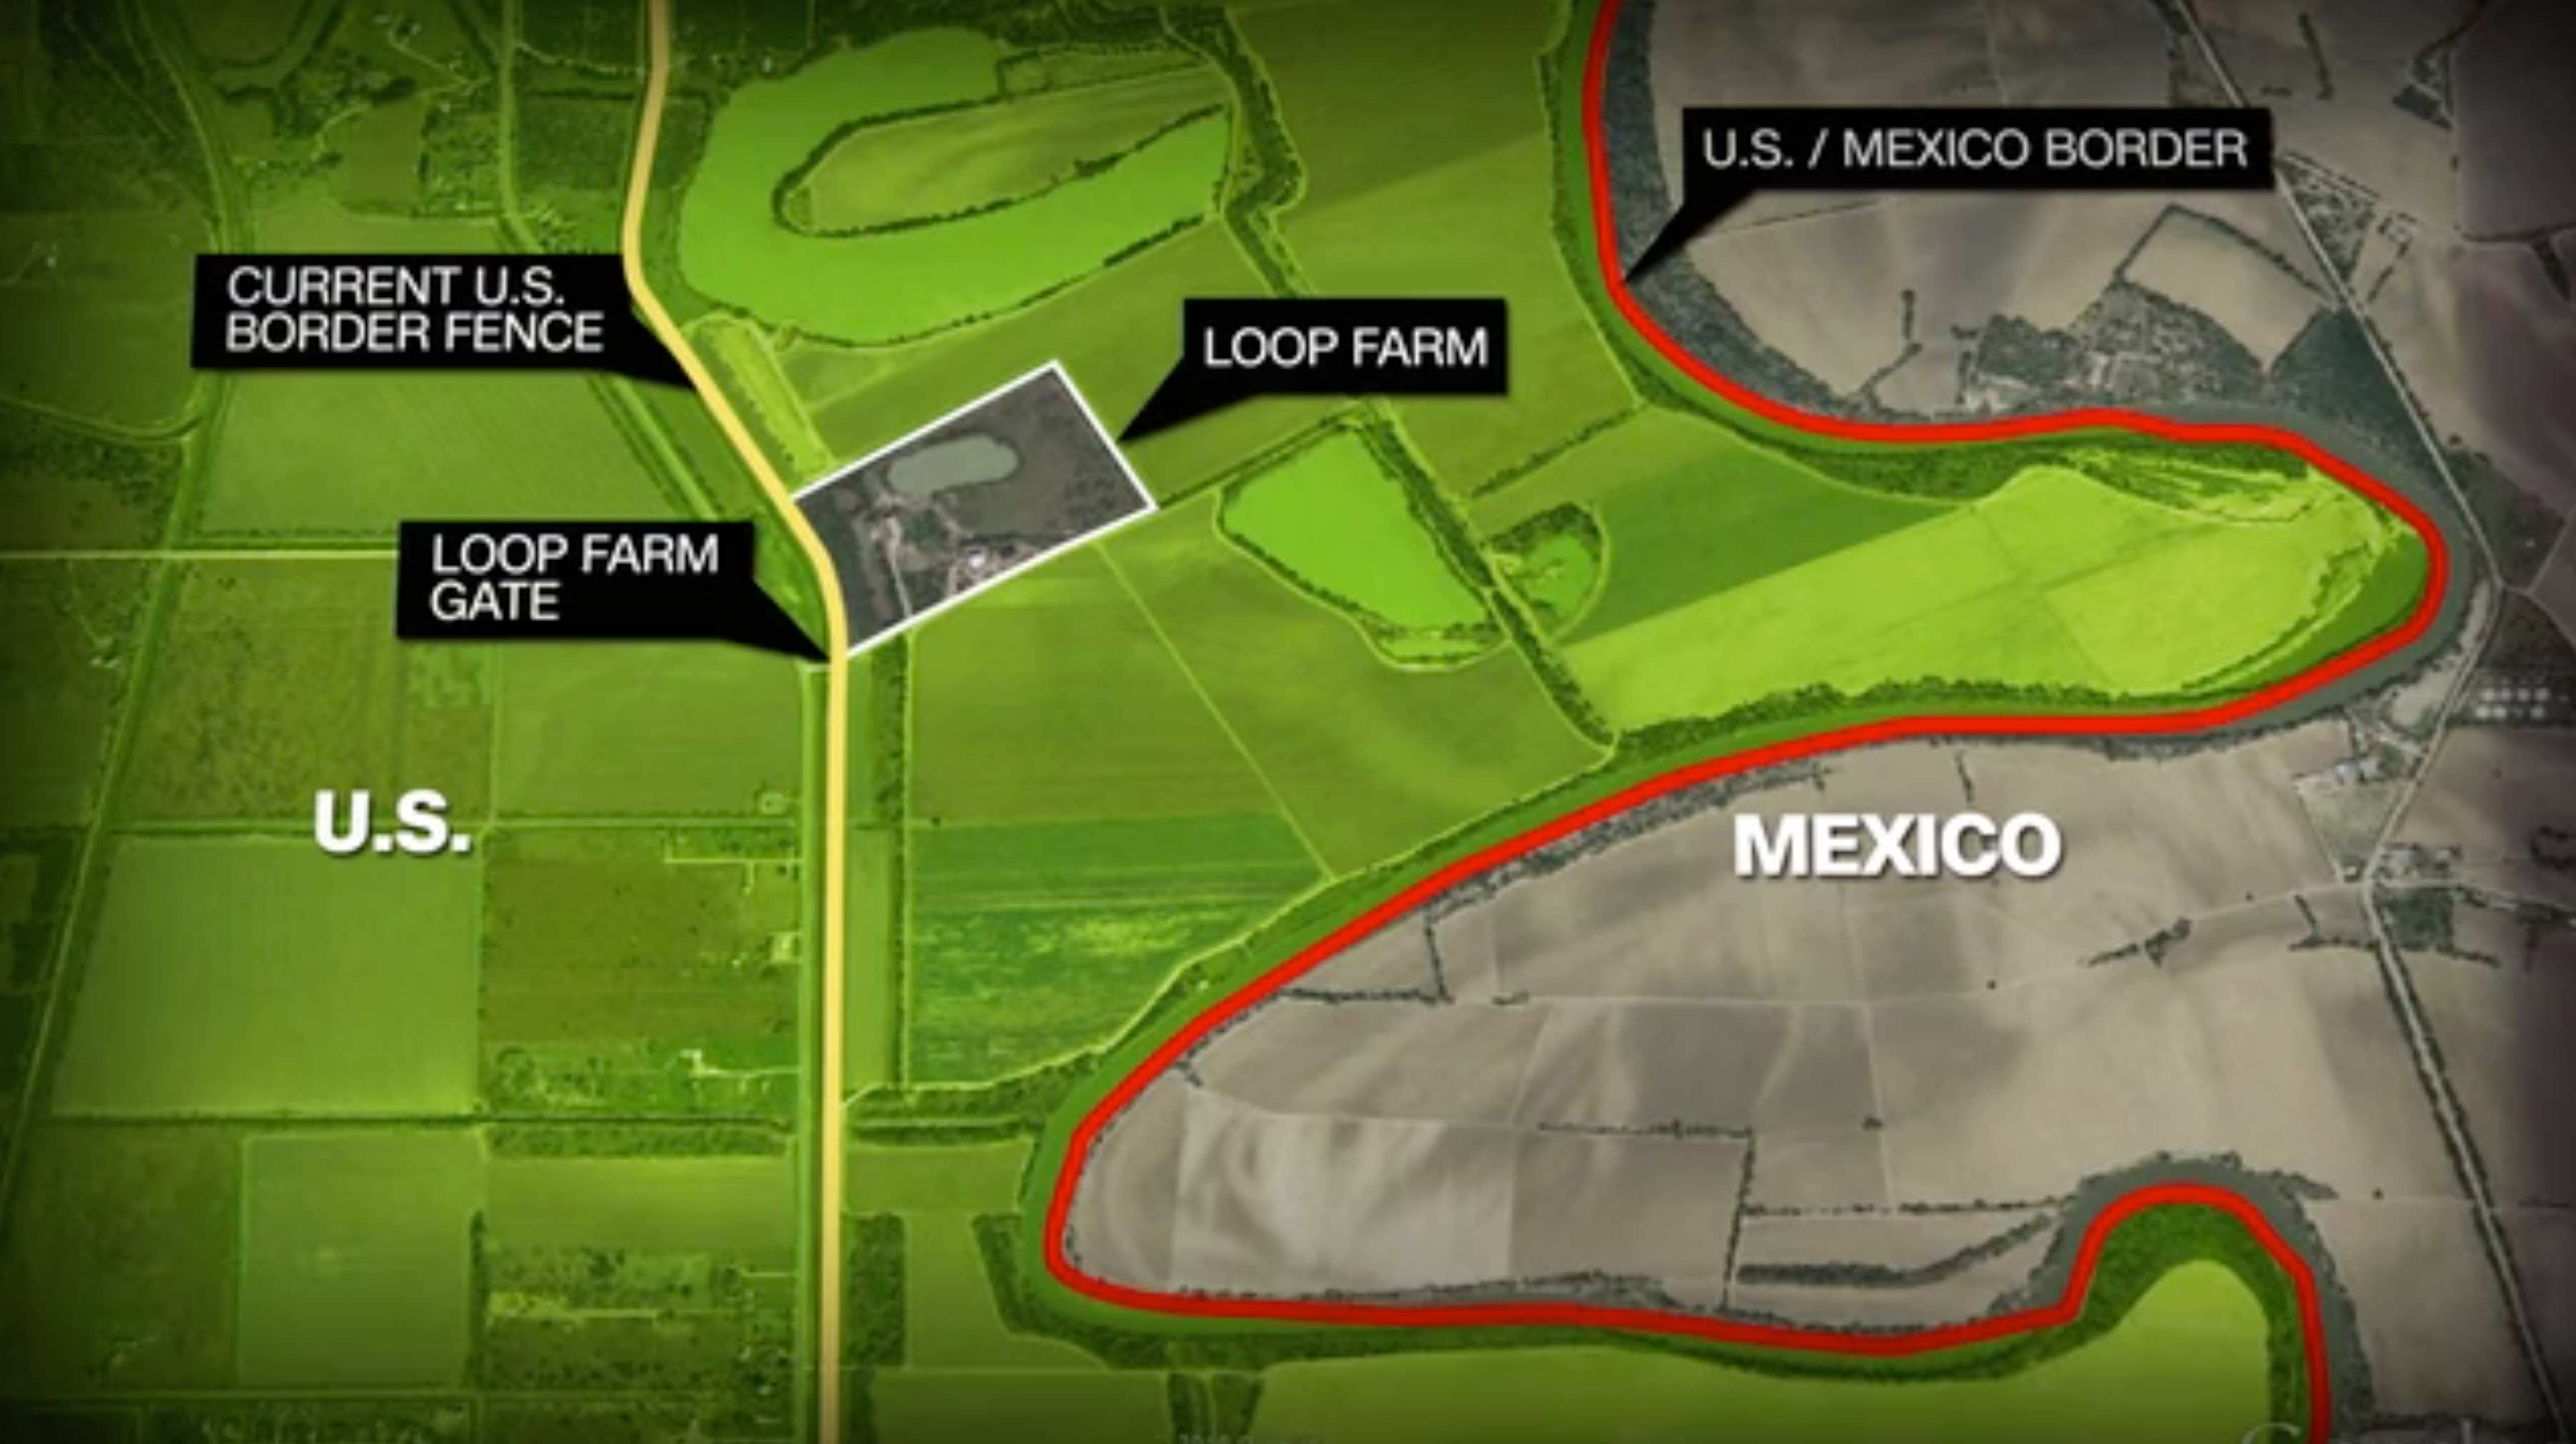 US Family Left On South Side Of Border CNNcom - Map of us border fence